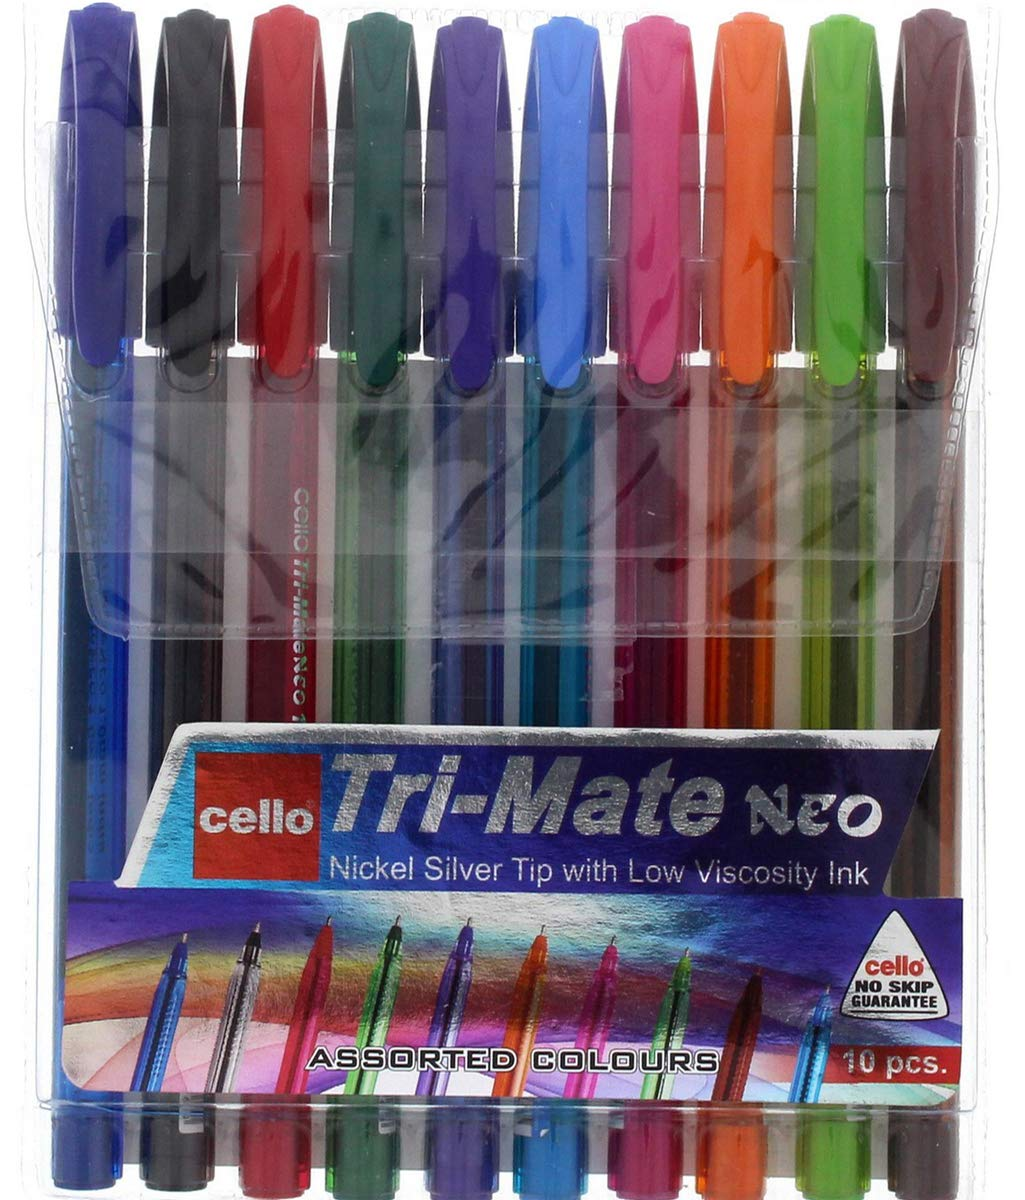 Cello Tri-mate Neo 100-ST Medium Rainbow Ballpoint Pen, Assorted Colours Biro,Coloured Pens | Fun Colours | Pack of 10